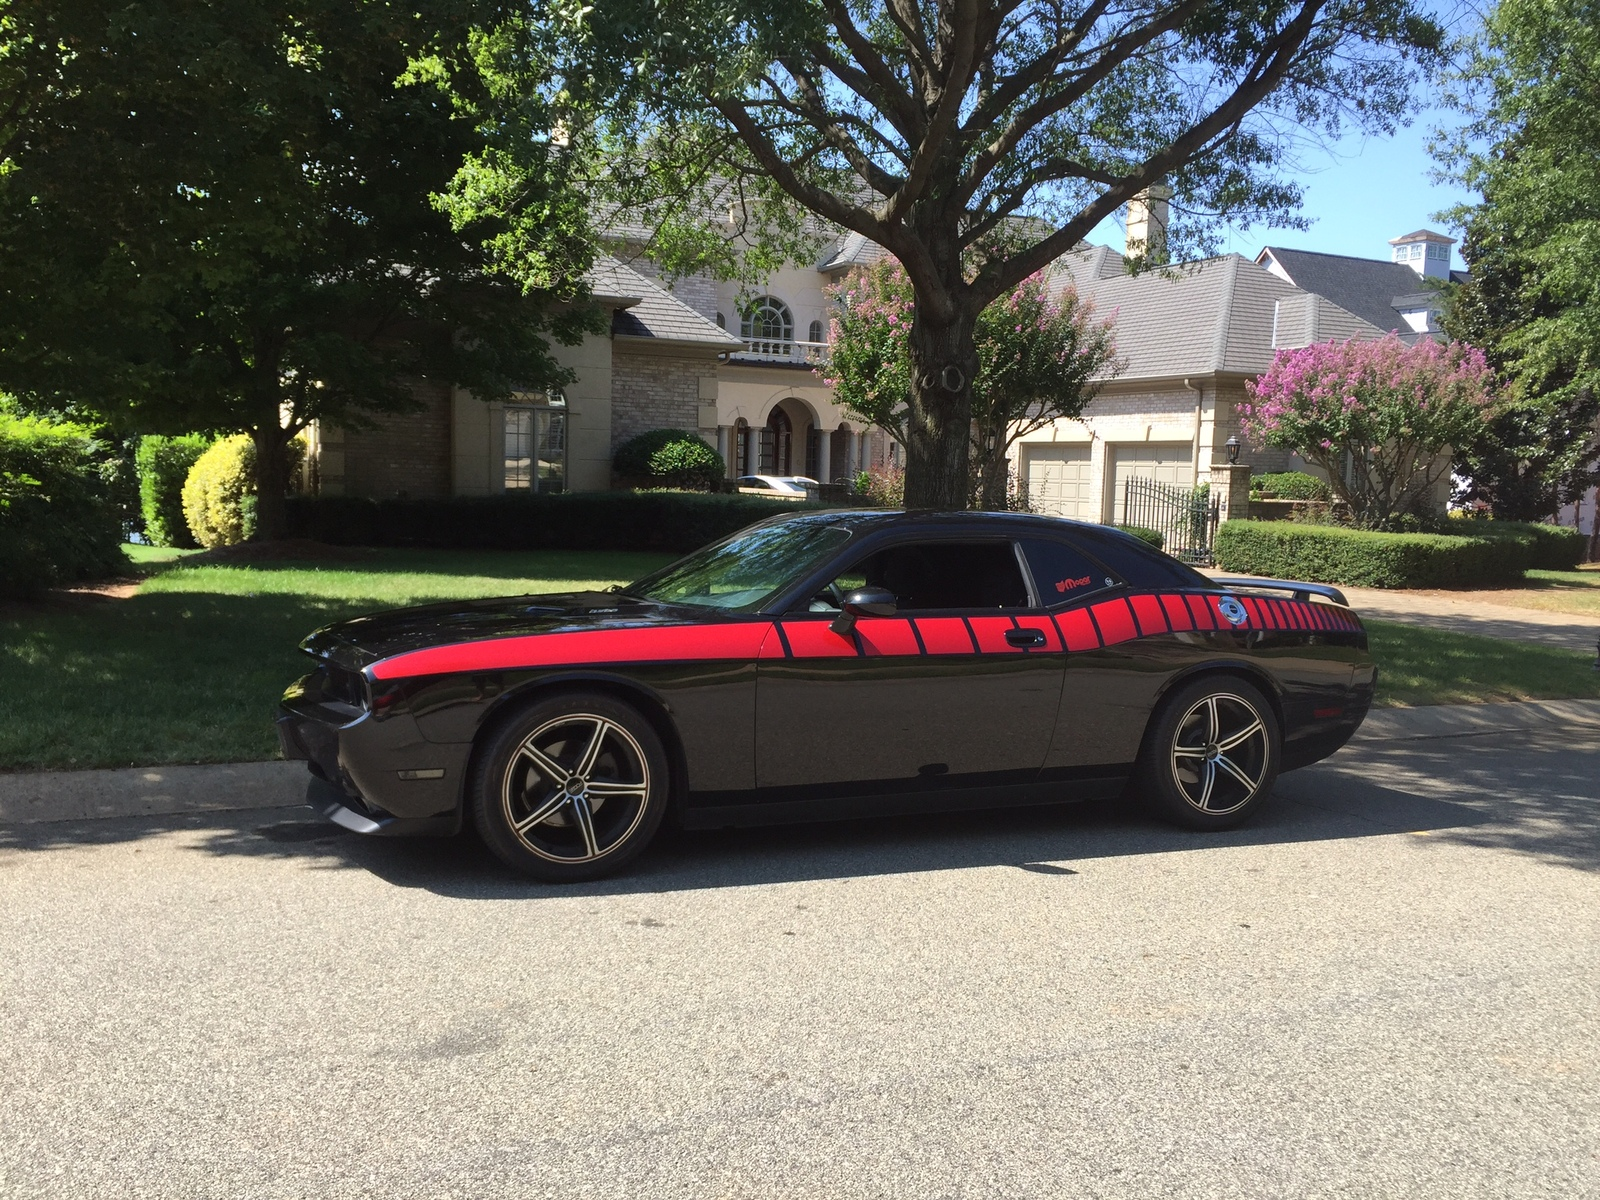 2010 Black Dodge Challenger SE picture, mods, upgrades